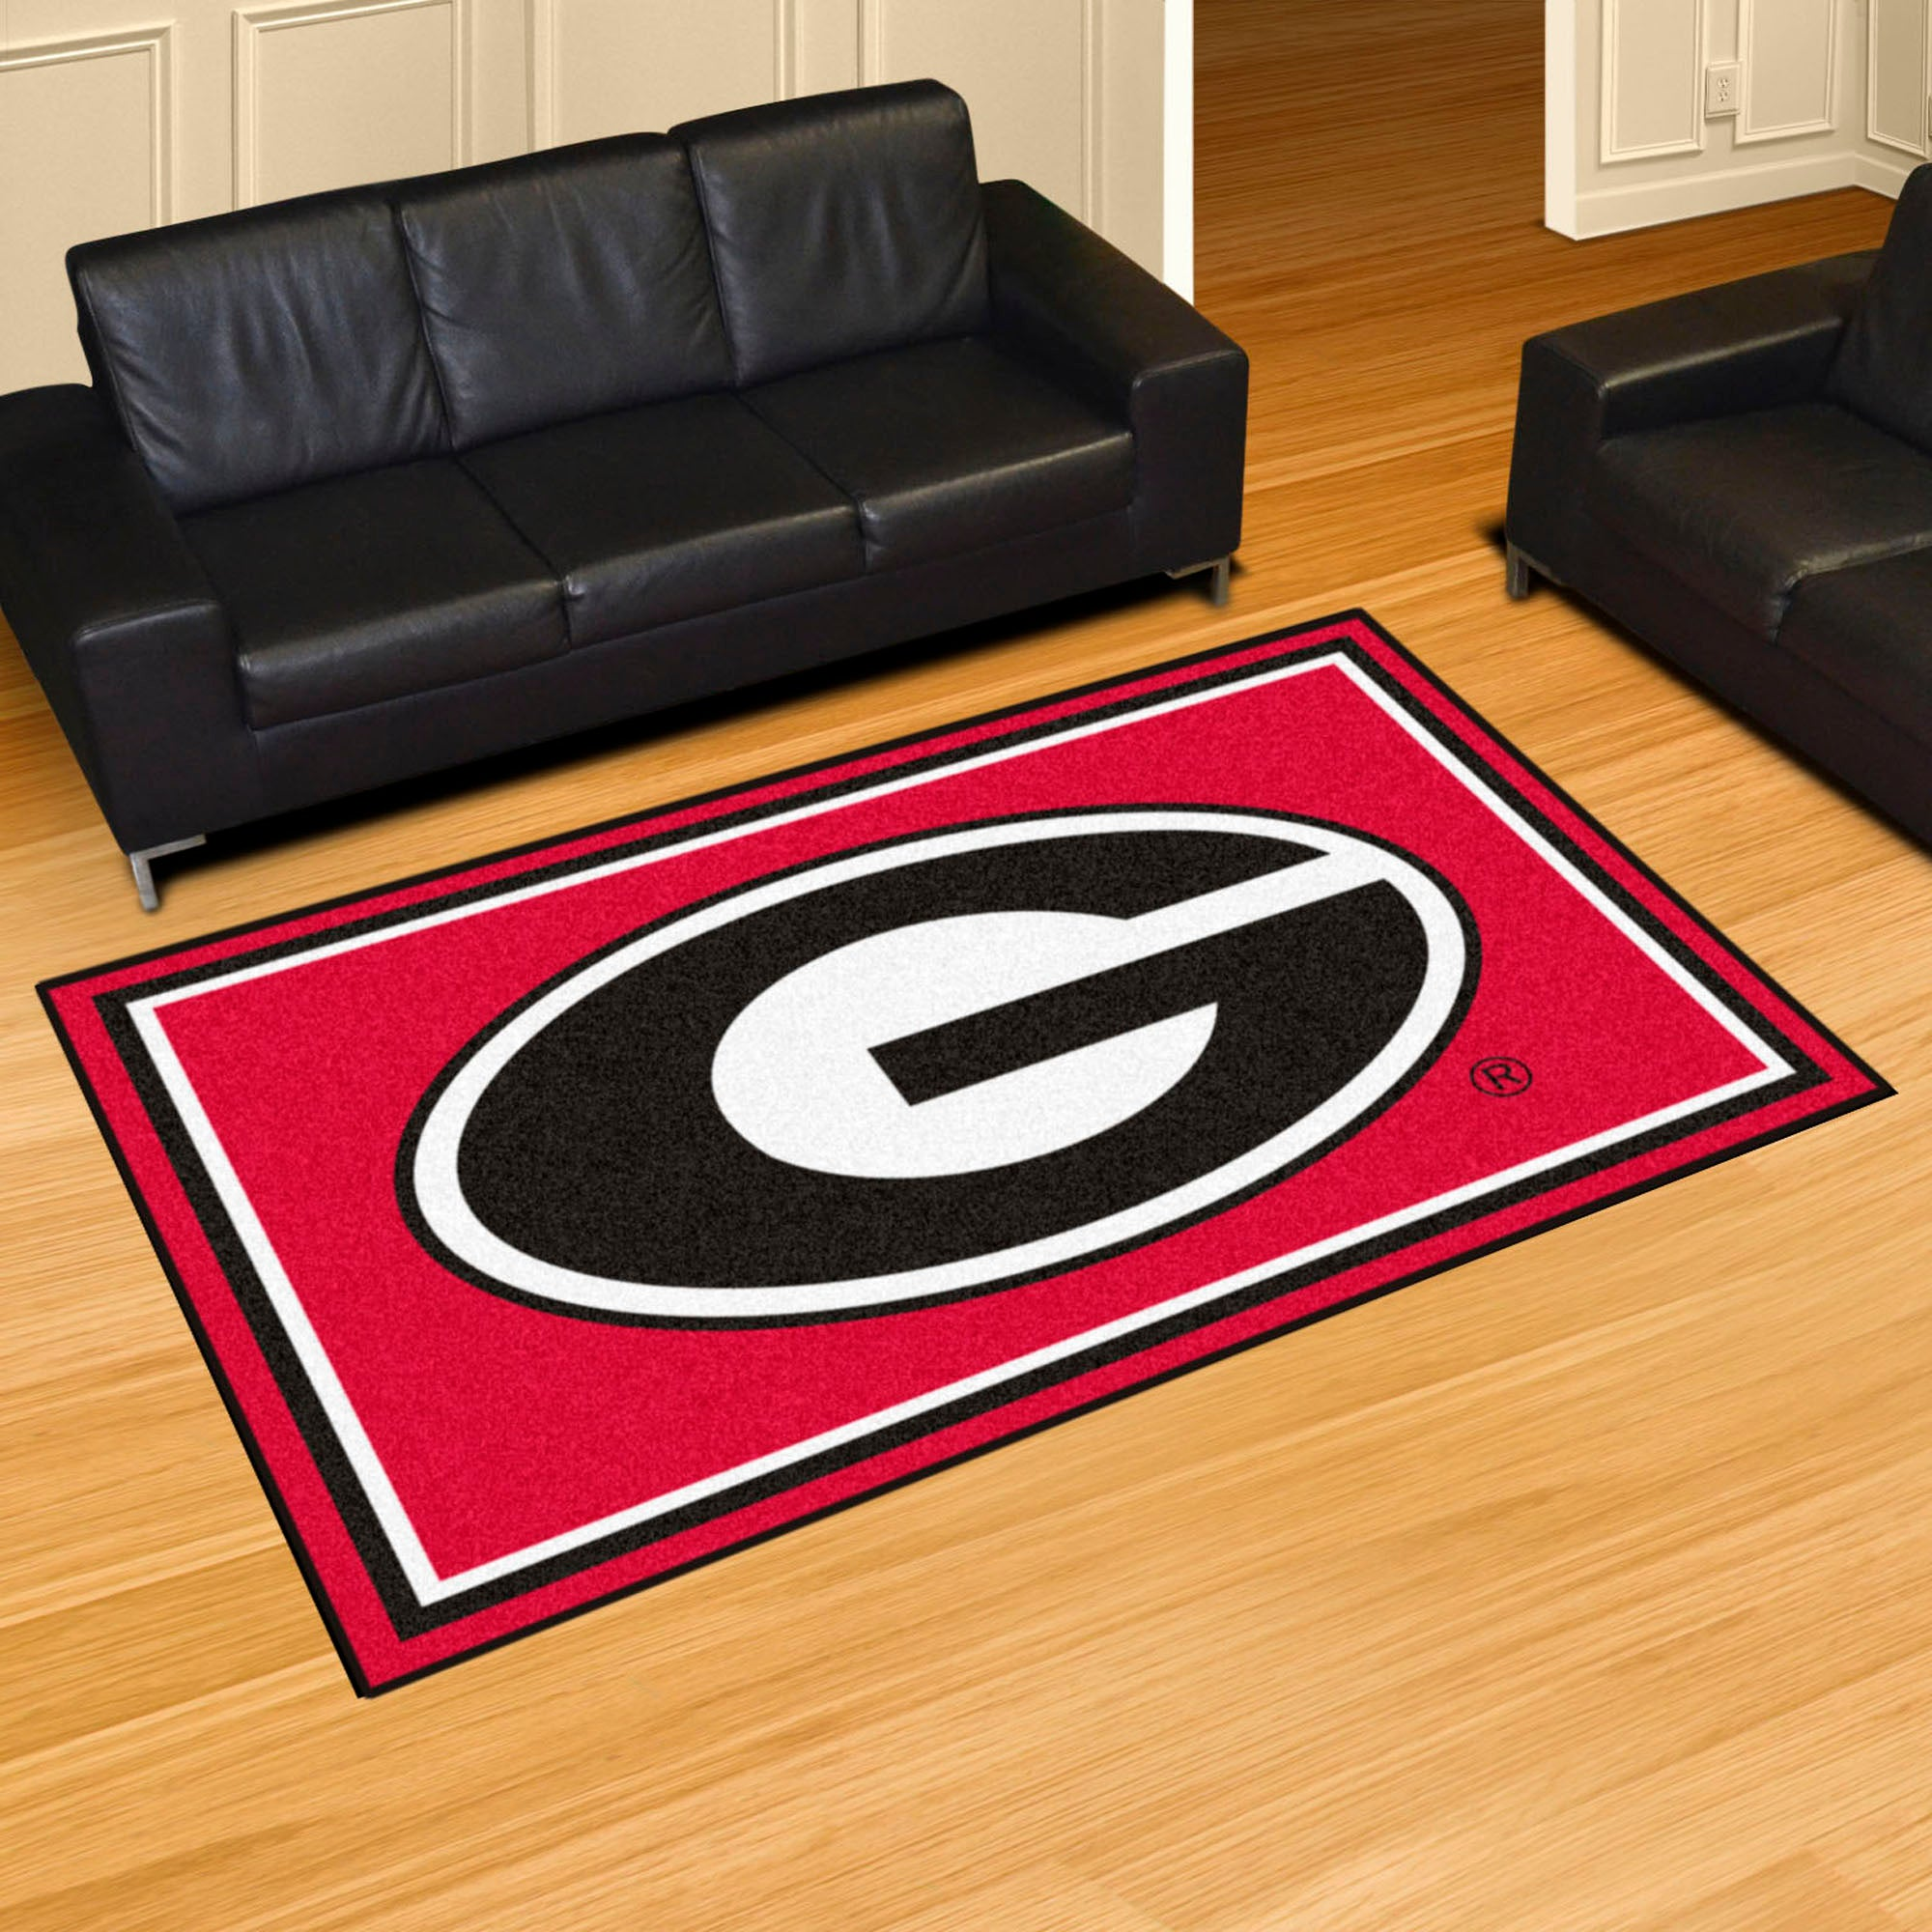 Georgia University Plush Rug  College Area Rug - Fan Rugs